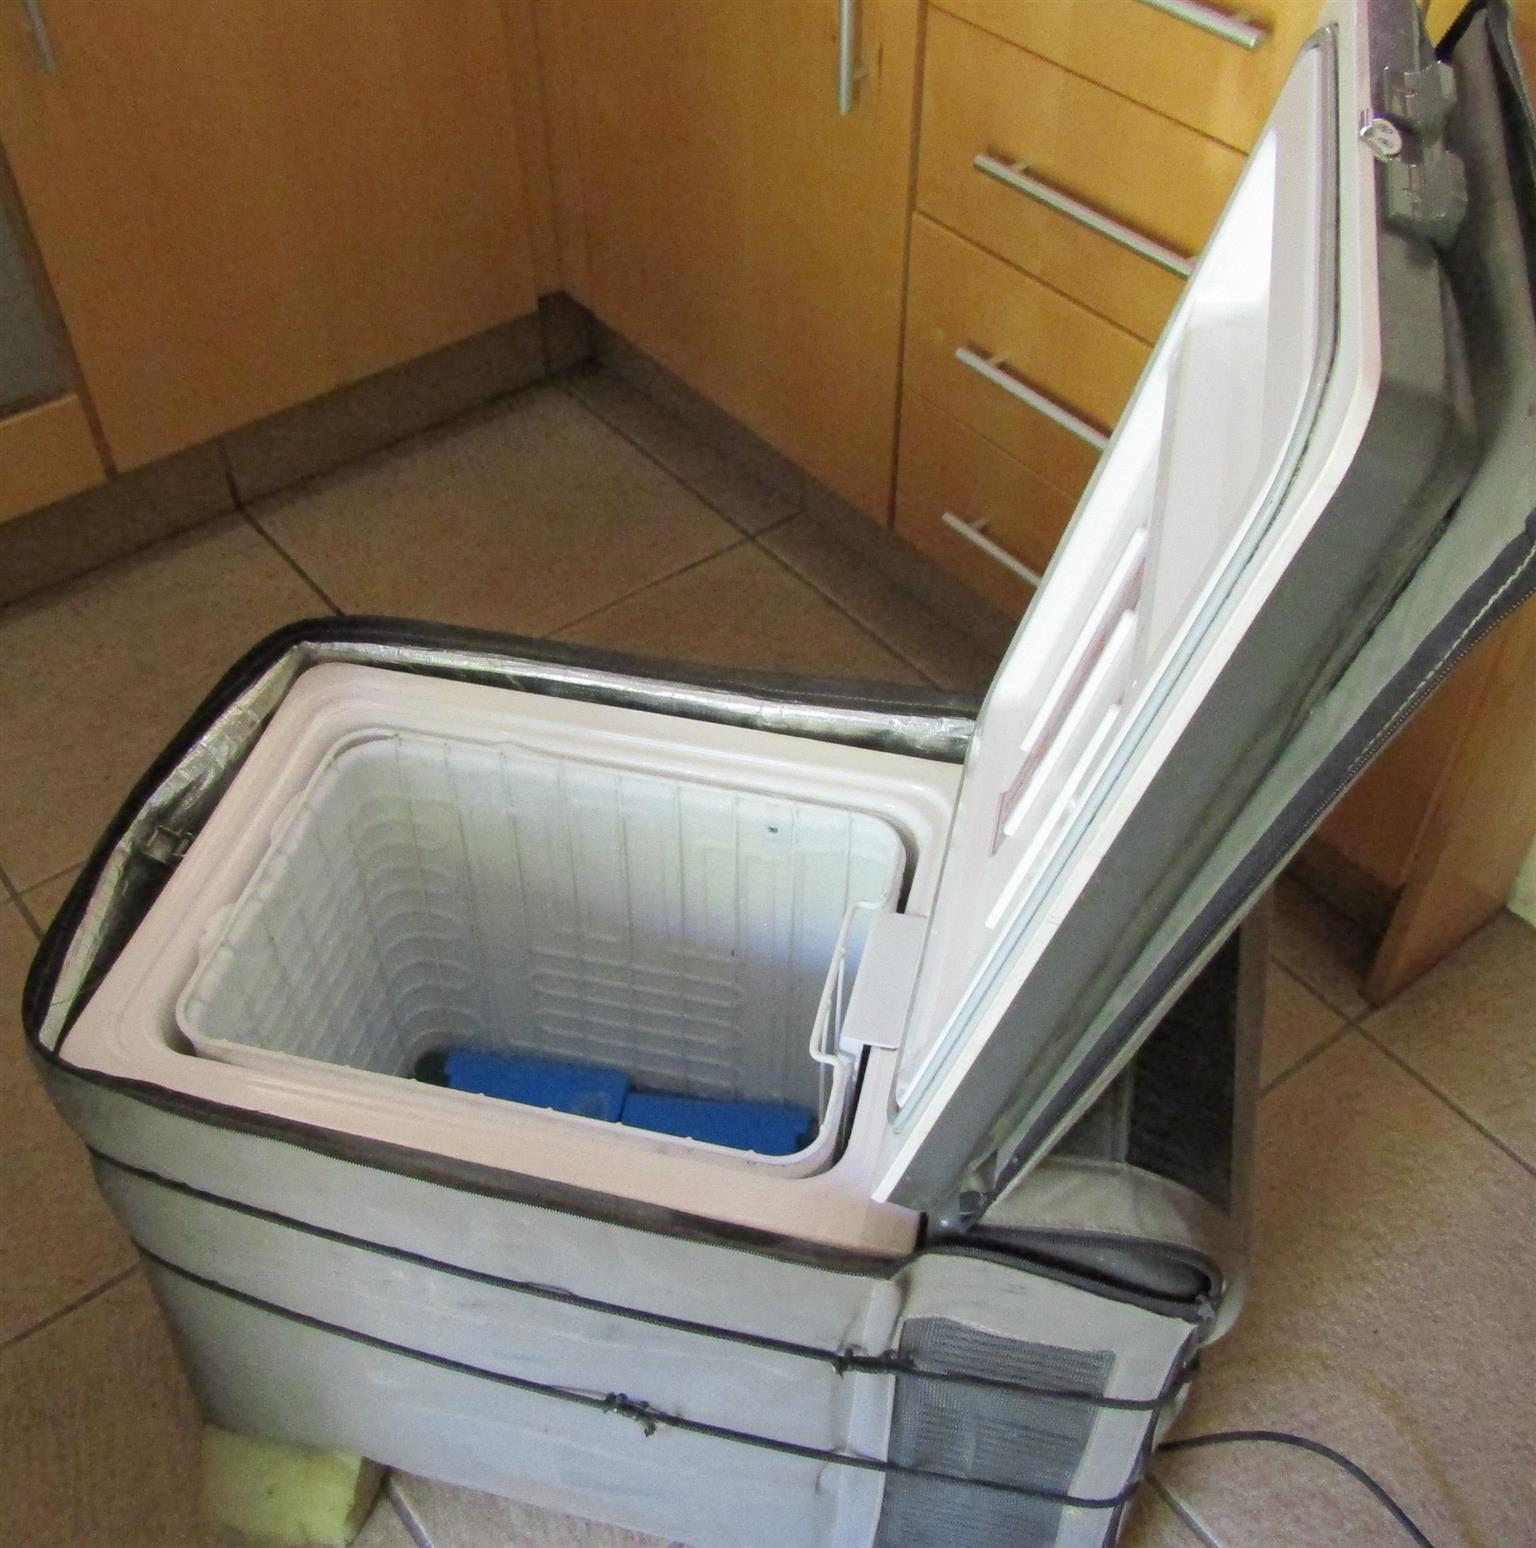 Engel 40ltr fridge for sale